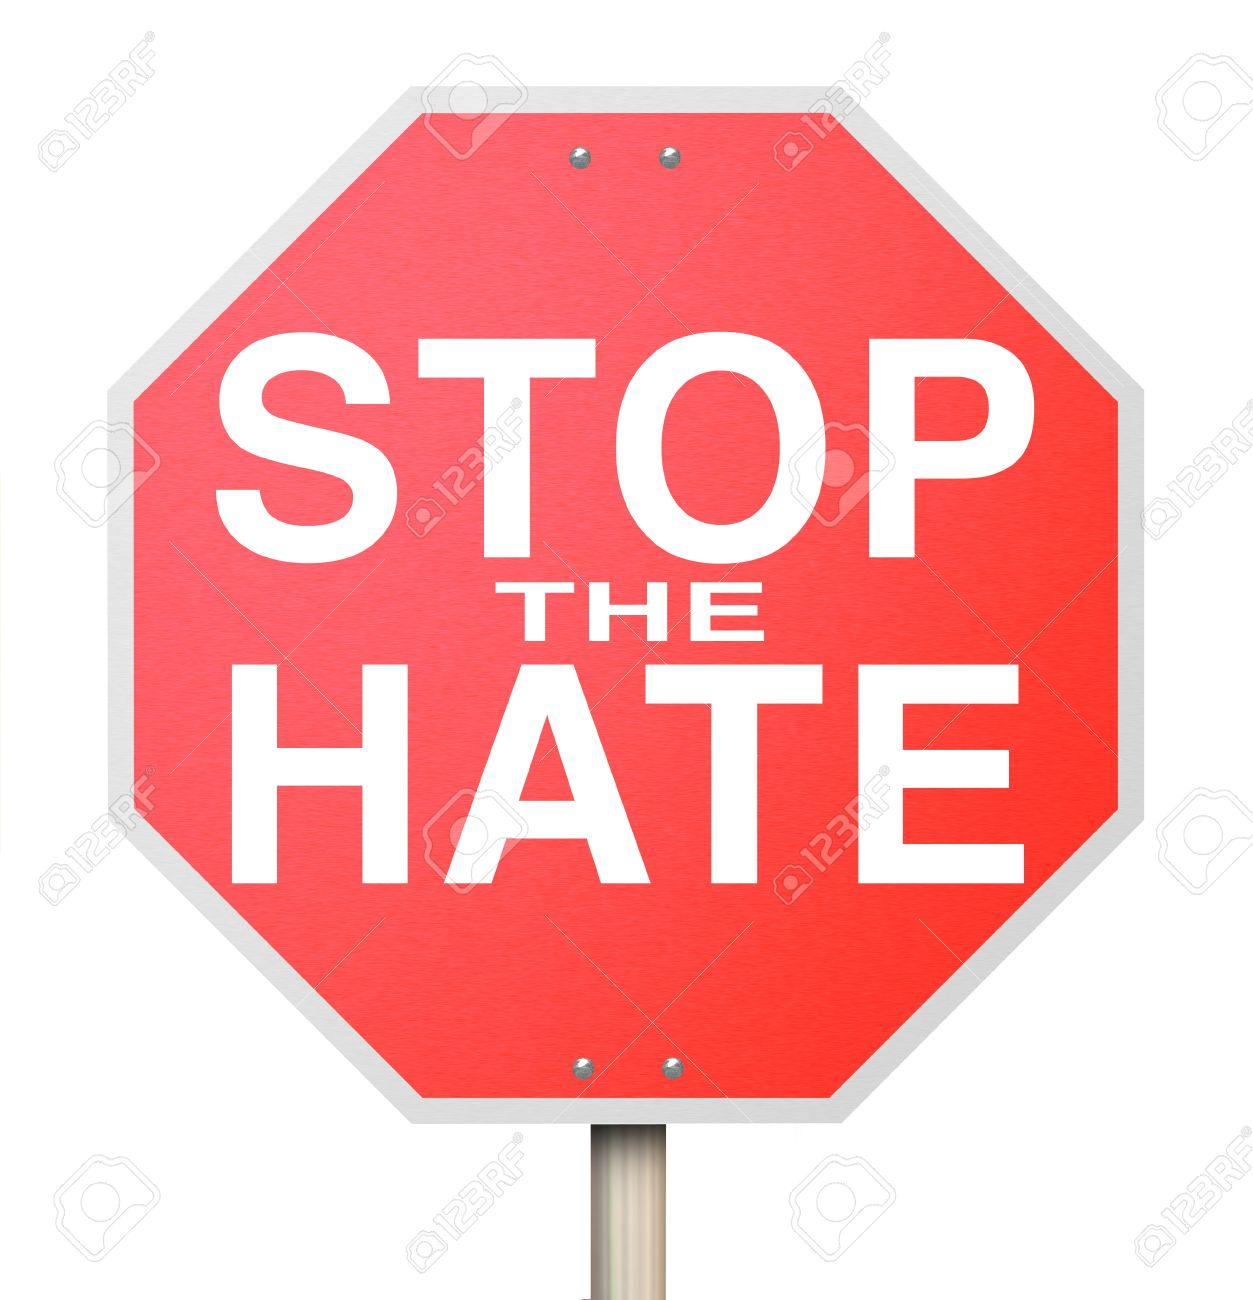 A Red Octogon Shapped Sign Reading Stop The Hate, Symbolizing.